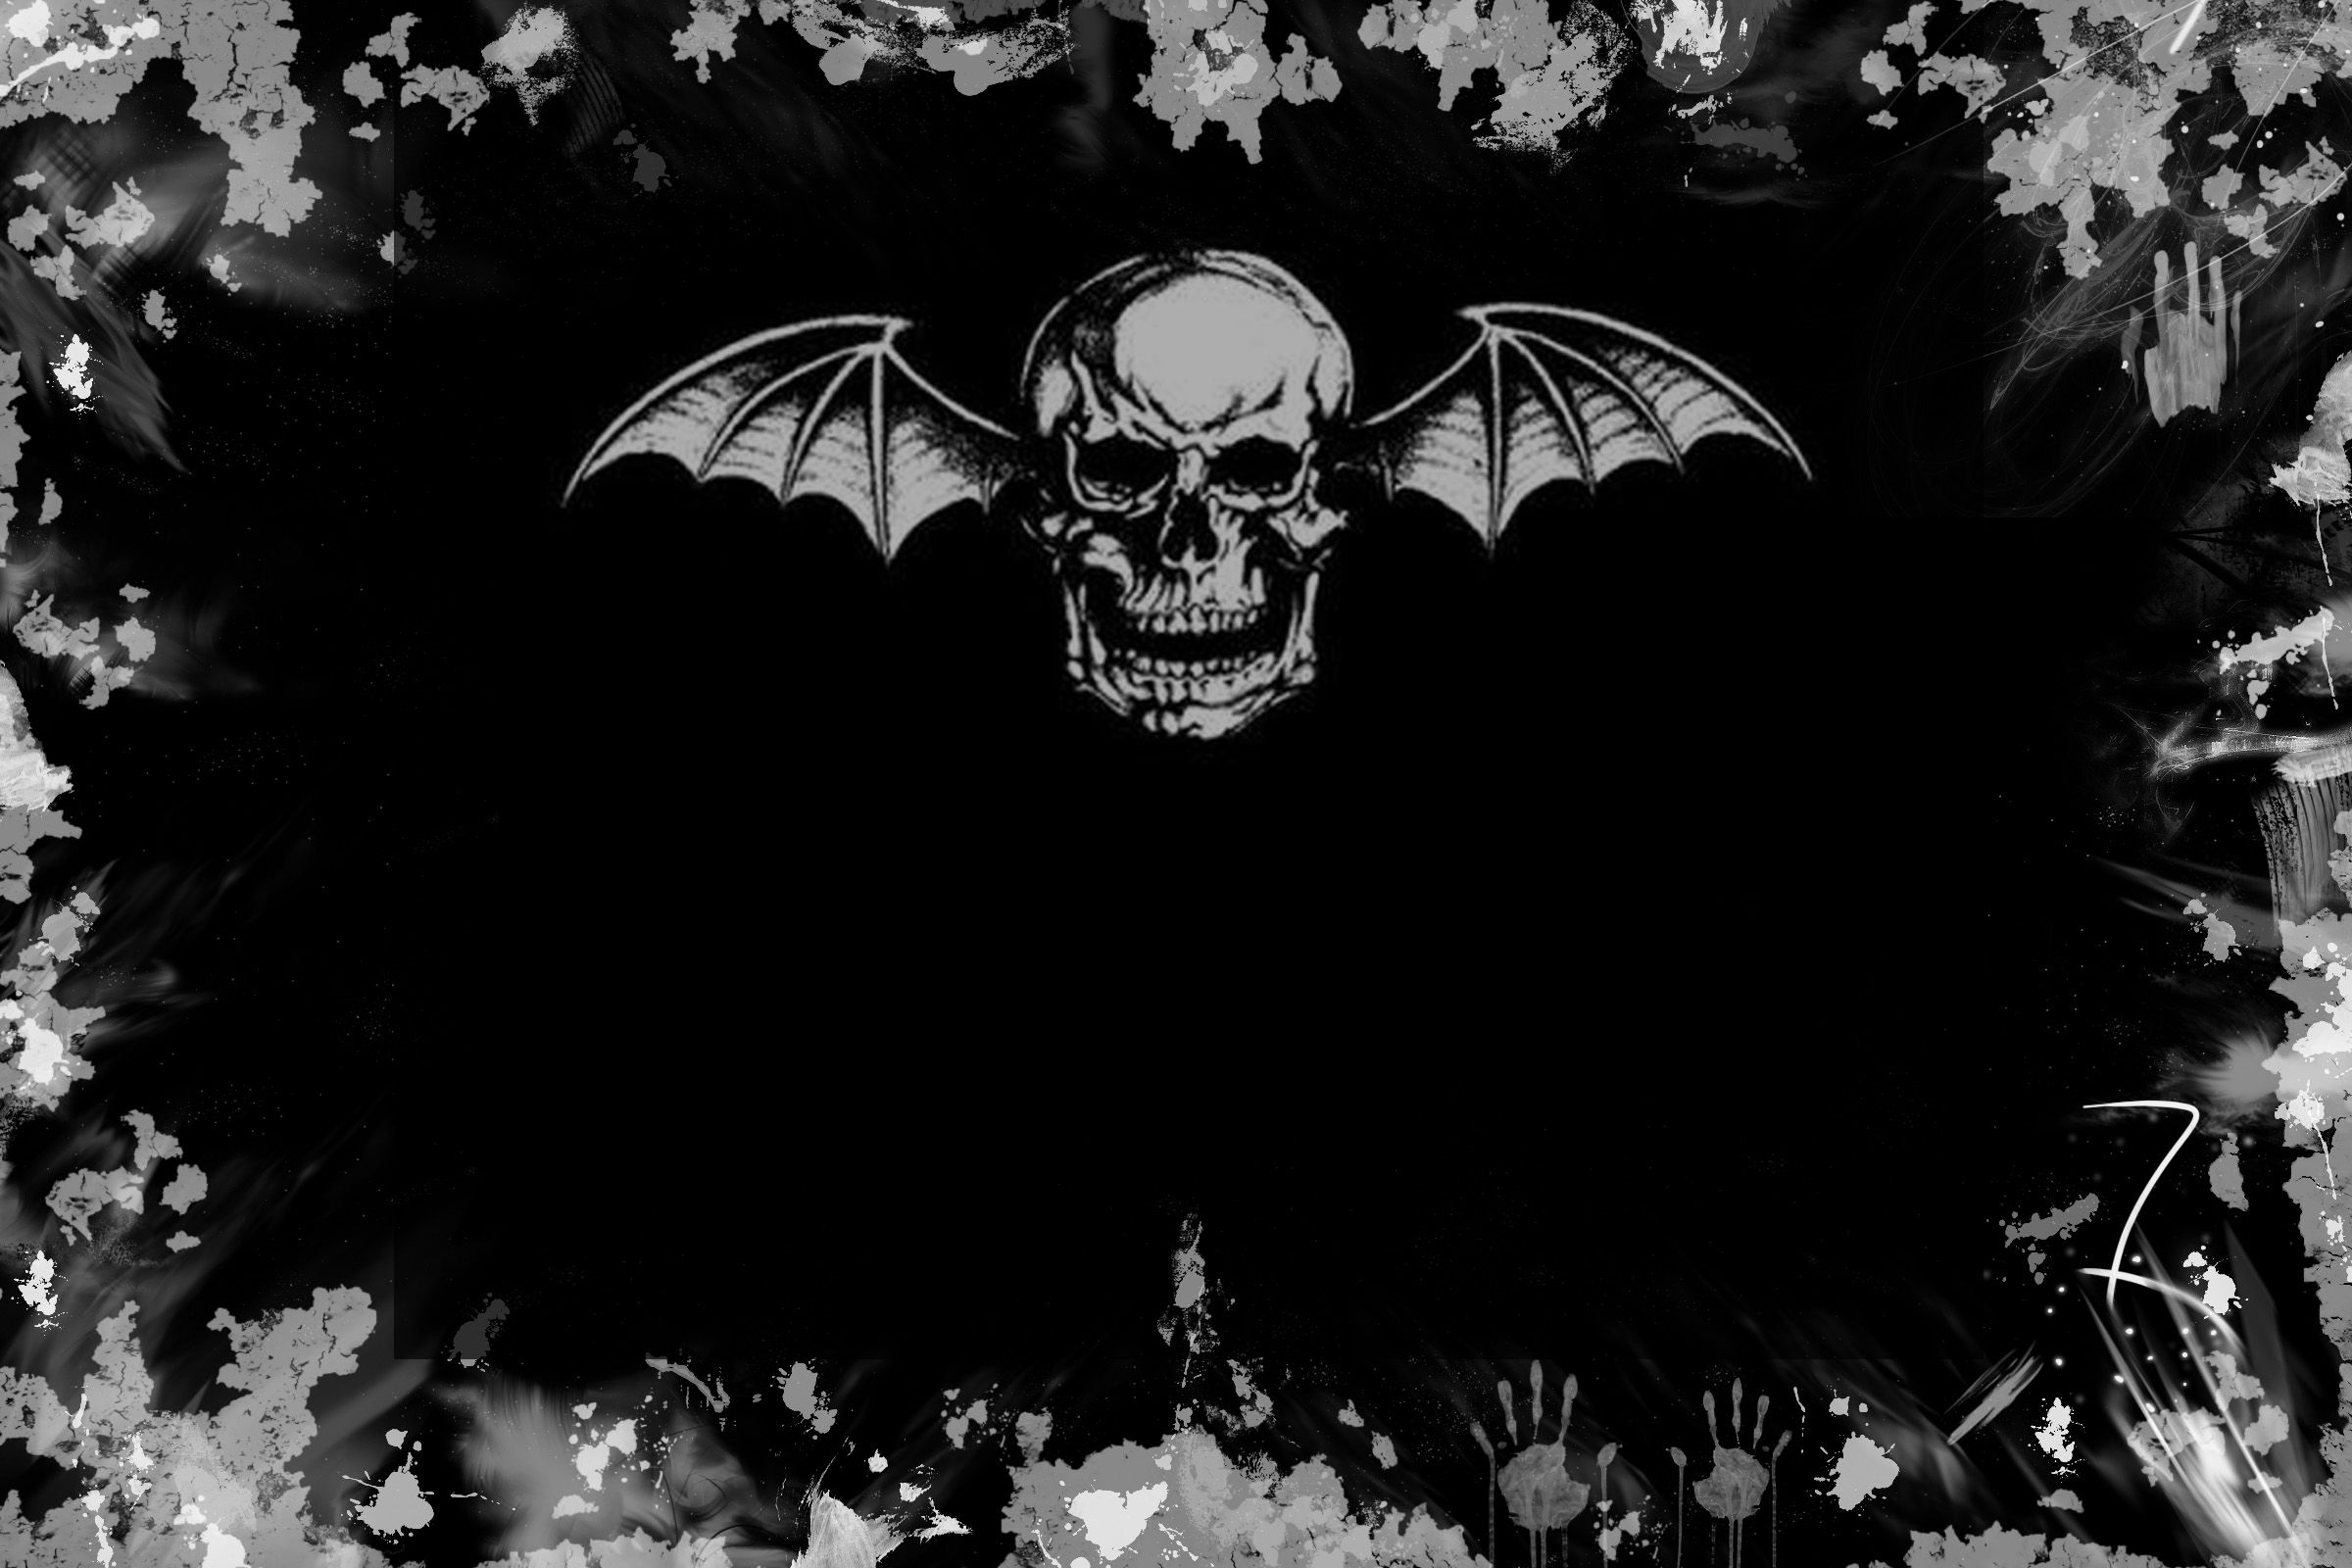 Avenged Sevenfold Hd Wide Wallpaper 26670 Wallpaper Risewall 2400x1600